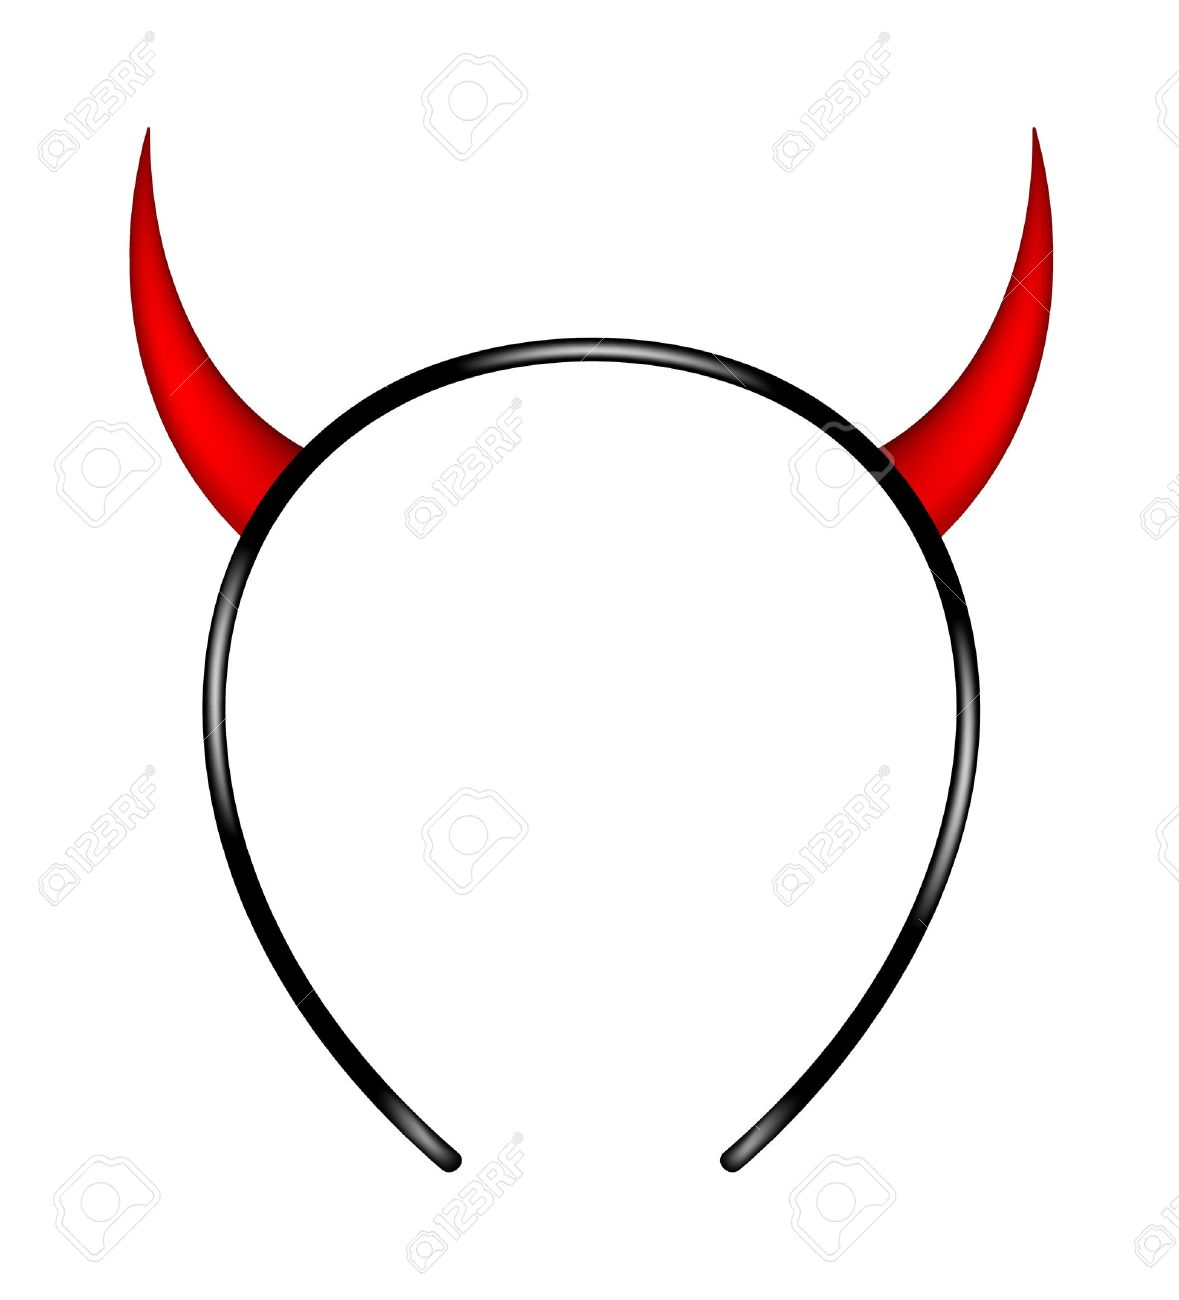 Horns clipart #16, Download drawings